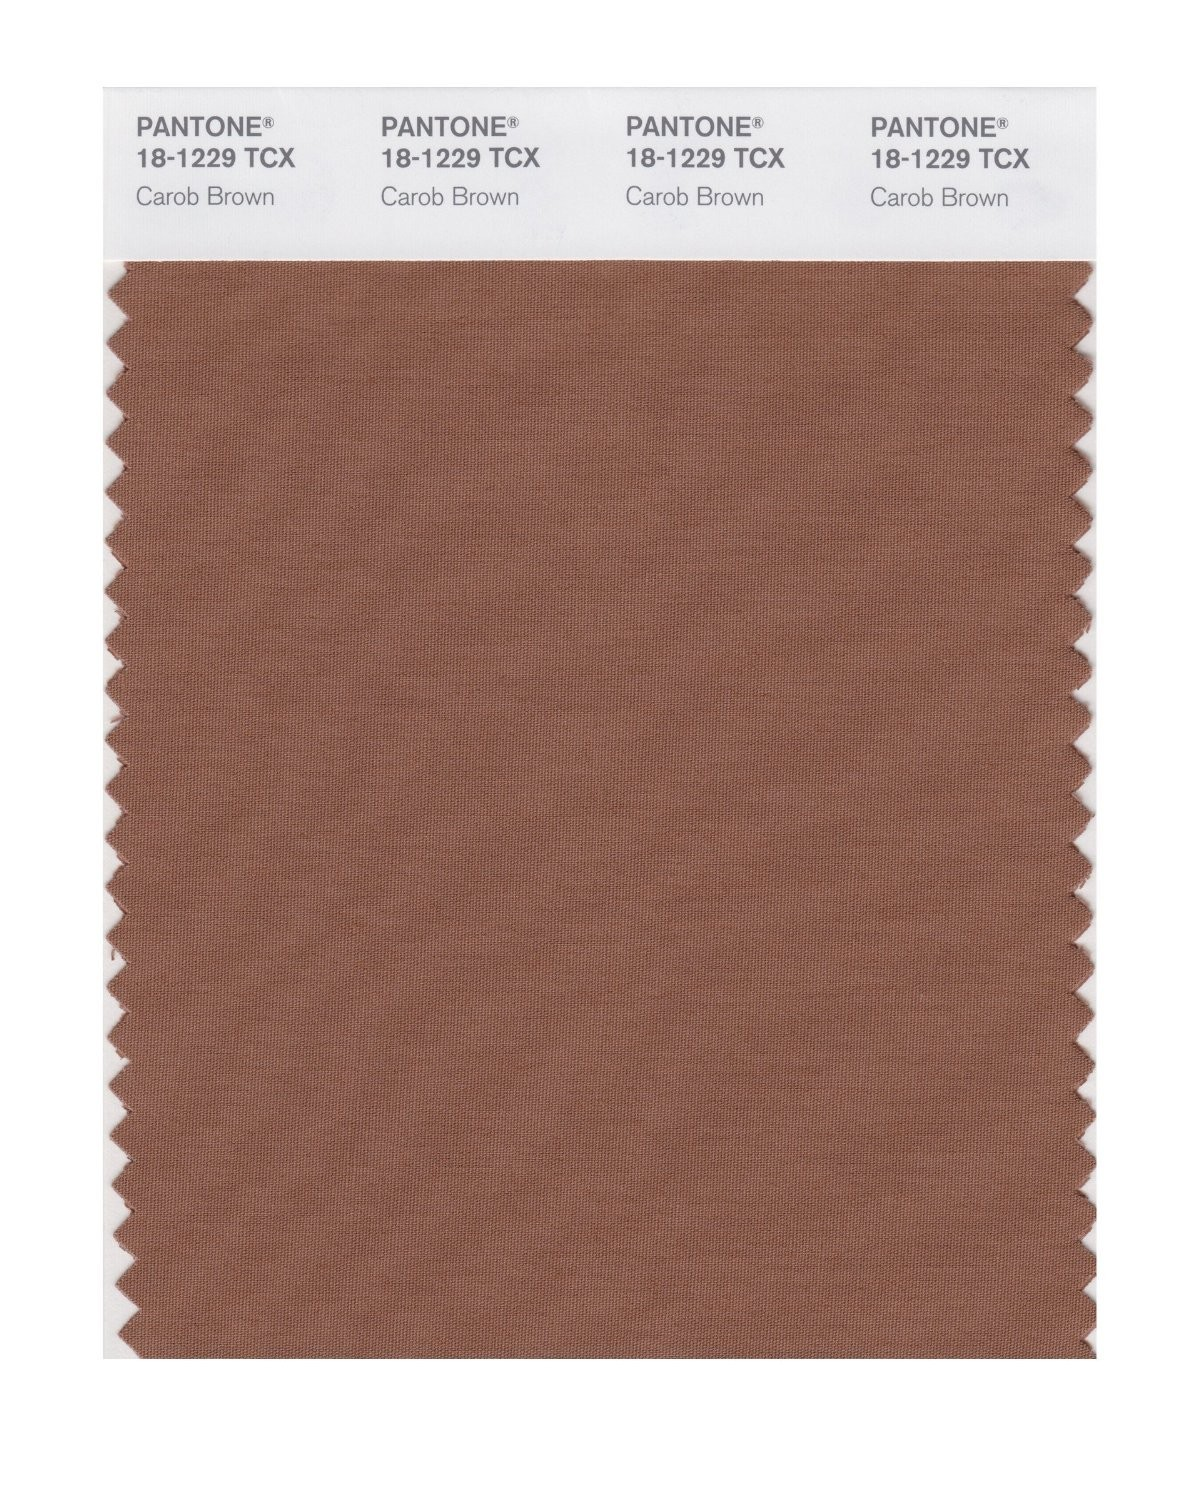 Pantone 18-1229 TCX Swatch Card Carob Brown